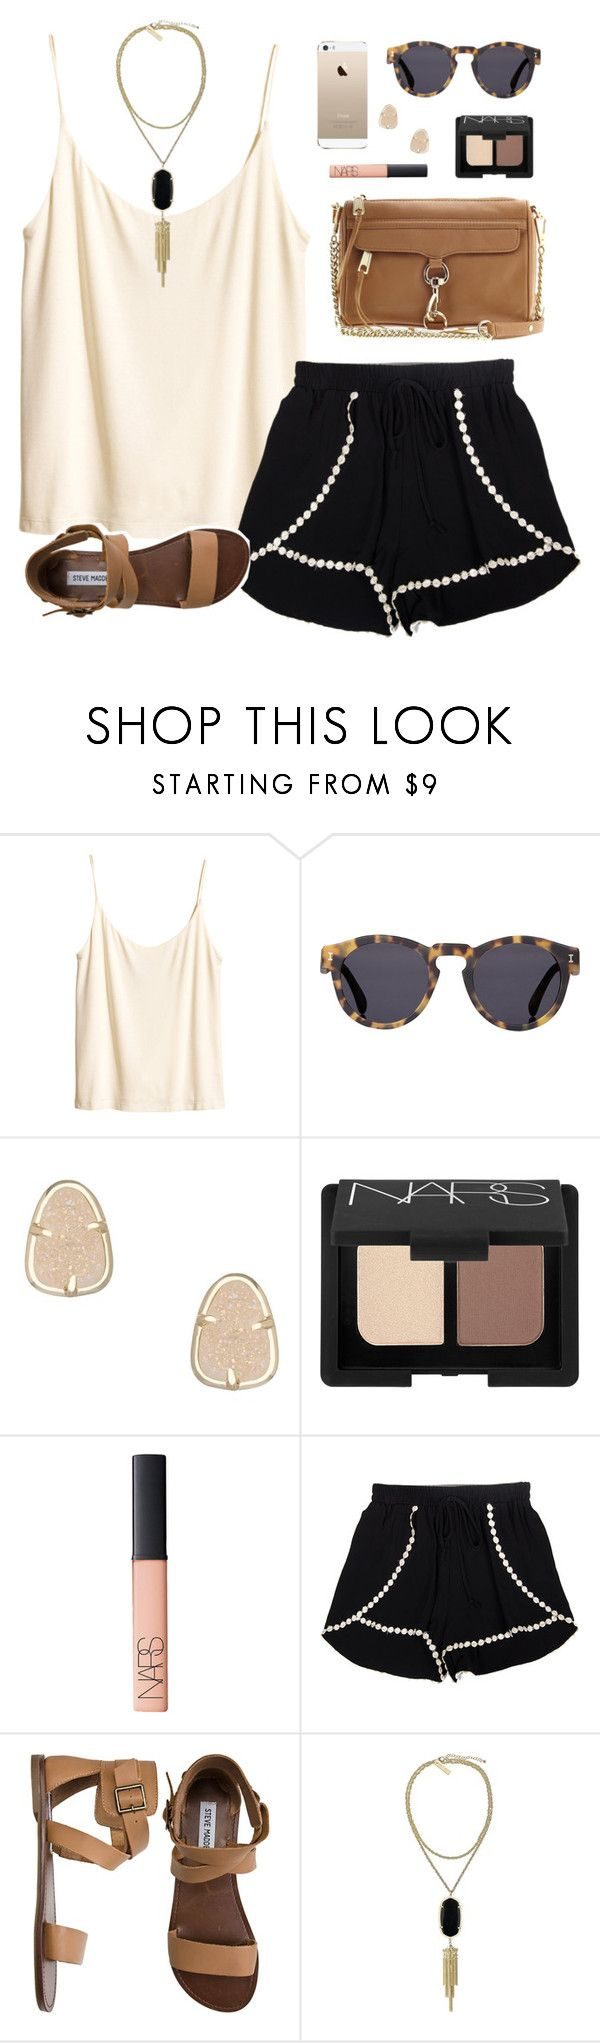 """""""birthdayyyy (:"""" by classically-preppy ❤ liked on Polyvore featuring H&M, Illesteva, Rebecca Minkoff, Kendra Scott, NARS Cosmetics and Steve Madden"""